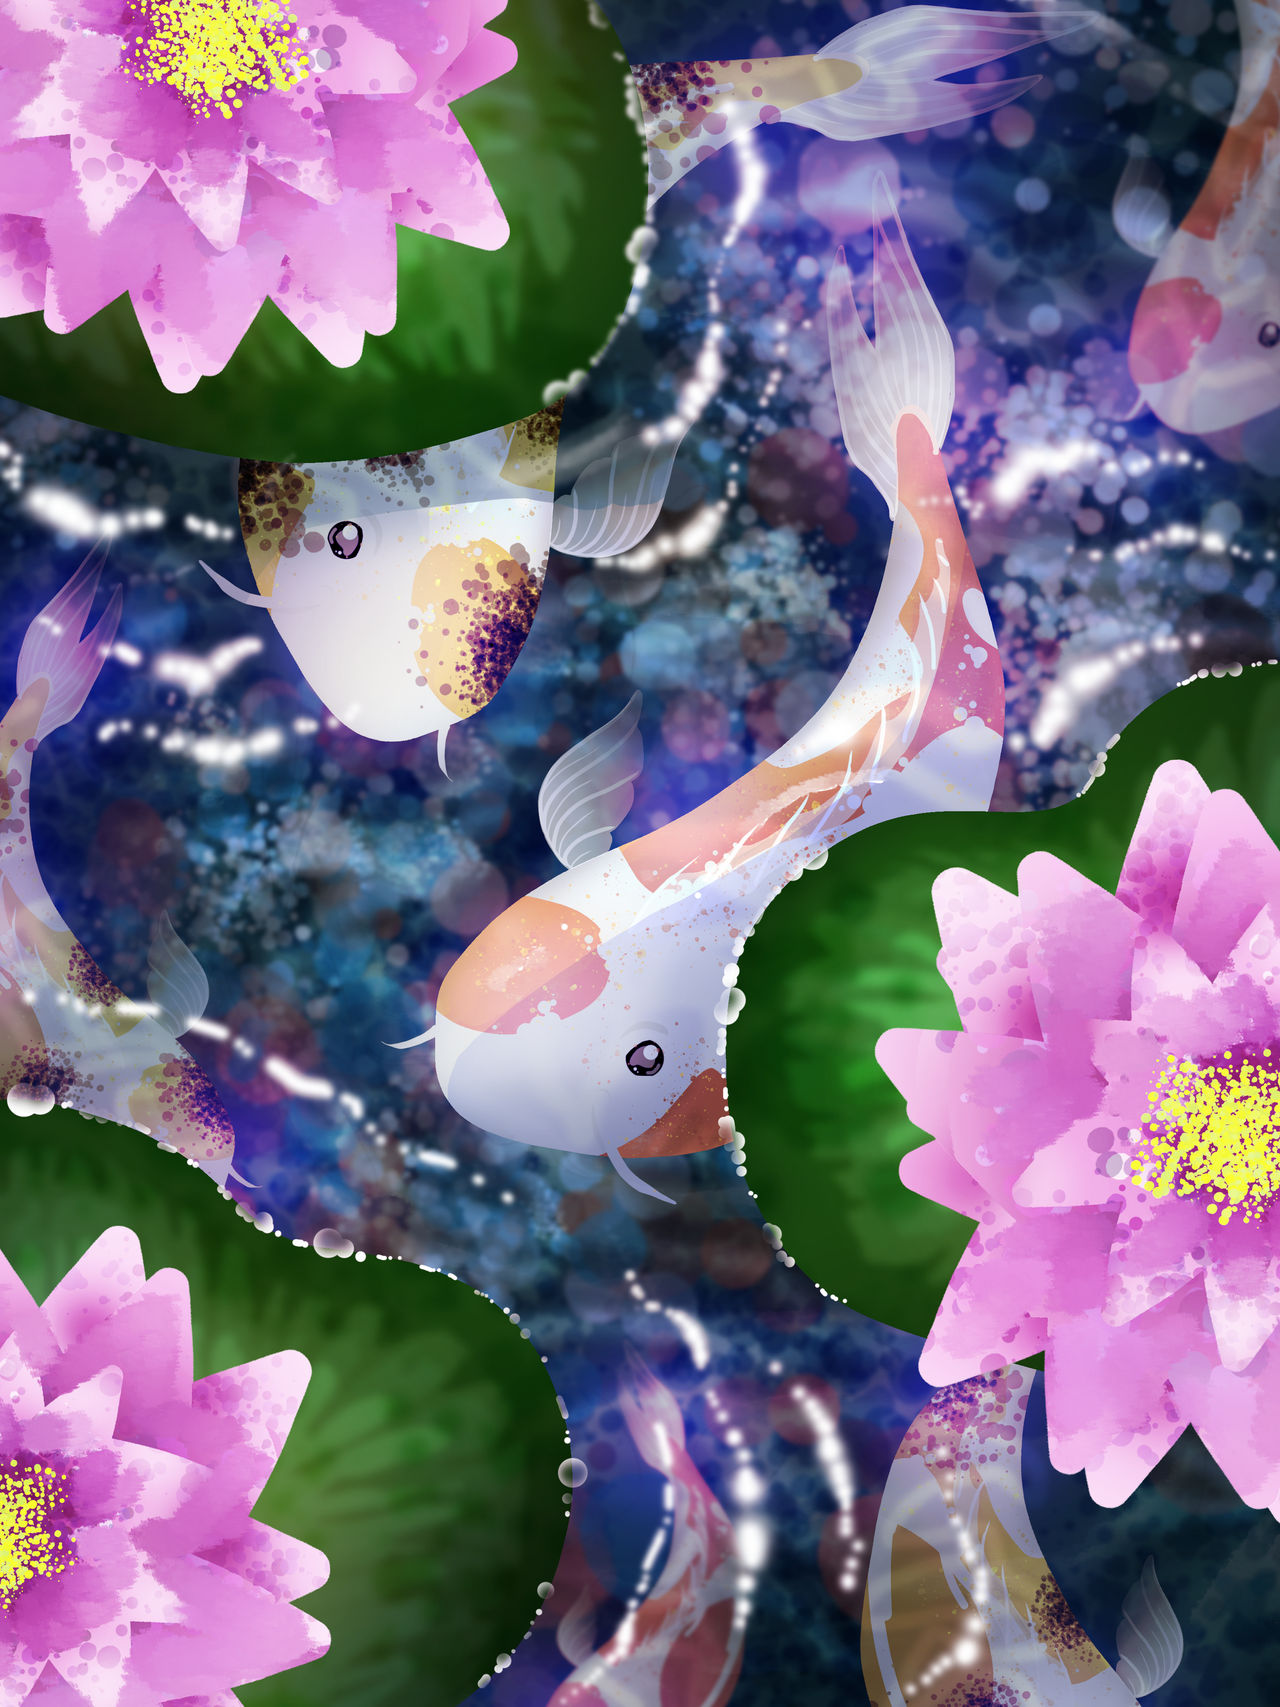 Koi Pond Digital Painting - DA Mouse Challenge